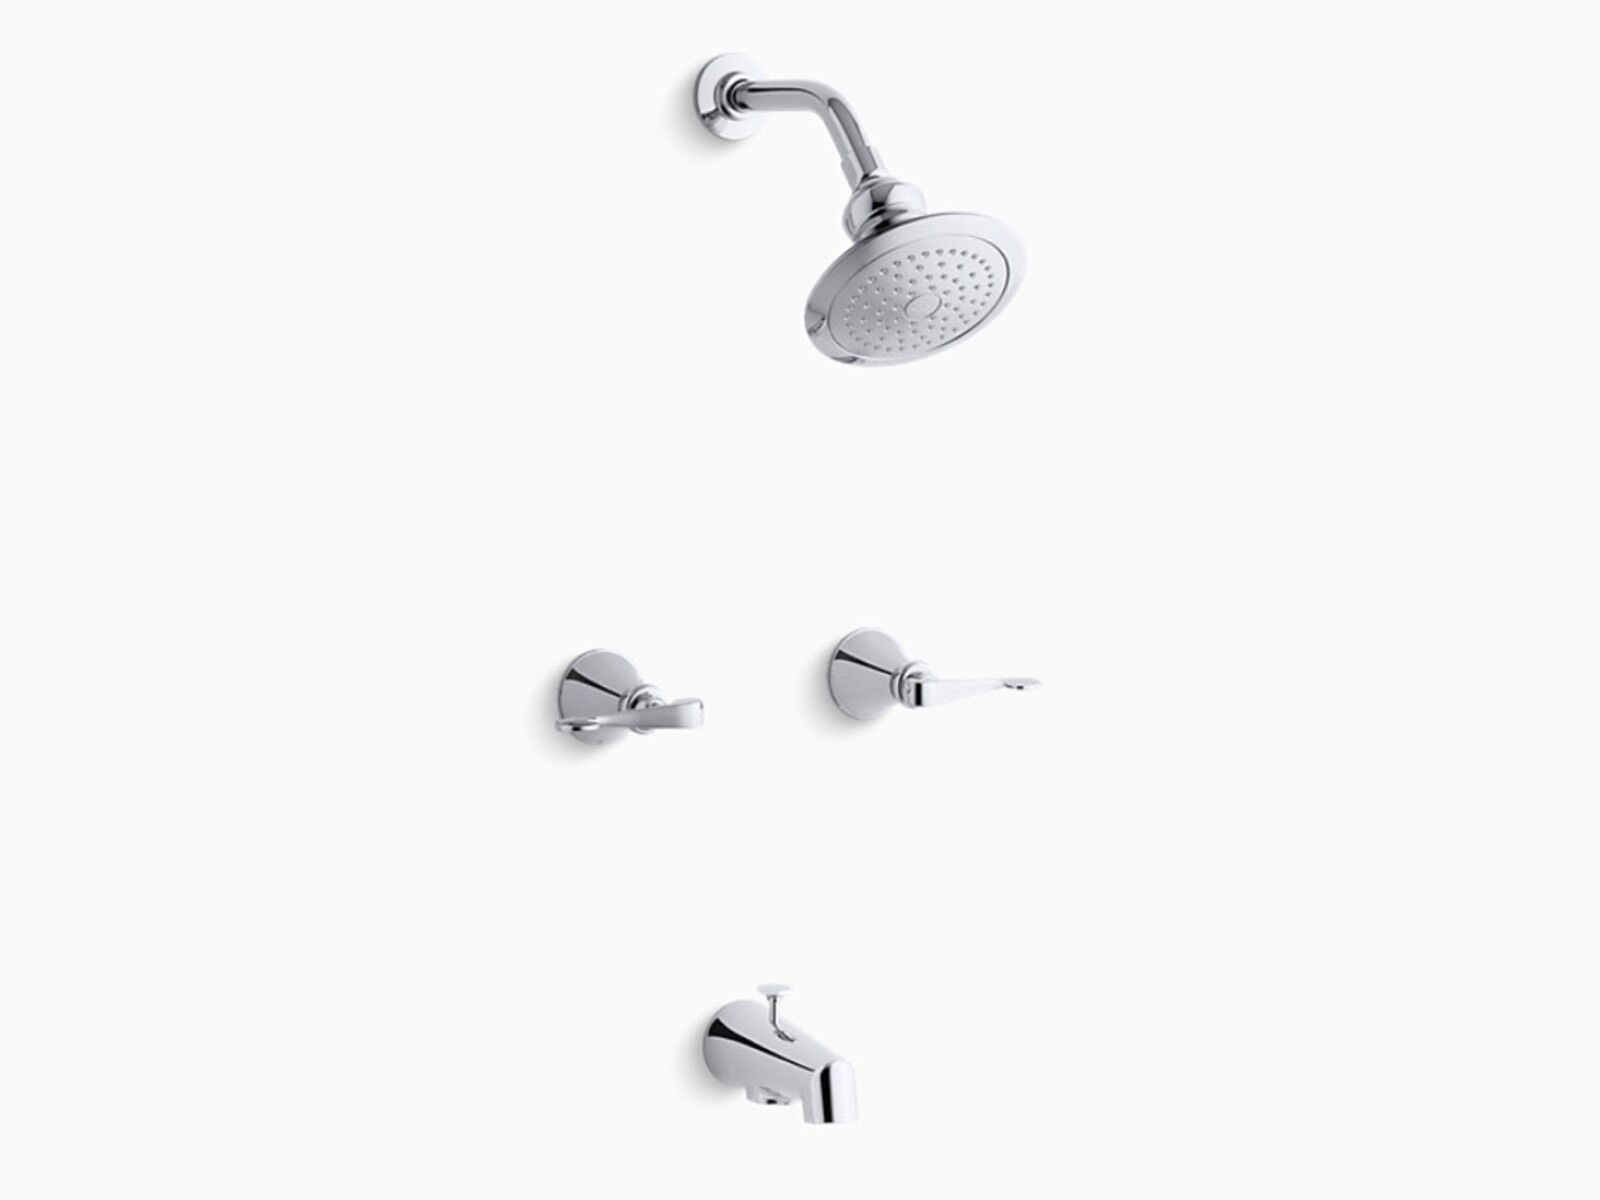 Kohler K 16213 4 Cp Revival Bath And Shower Faucet Trim Only In Polished Chrome